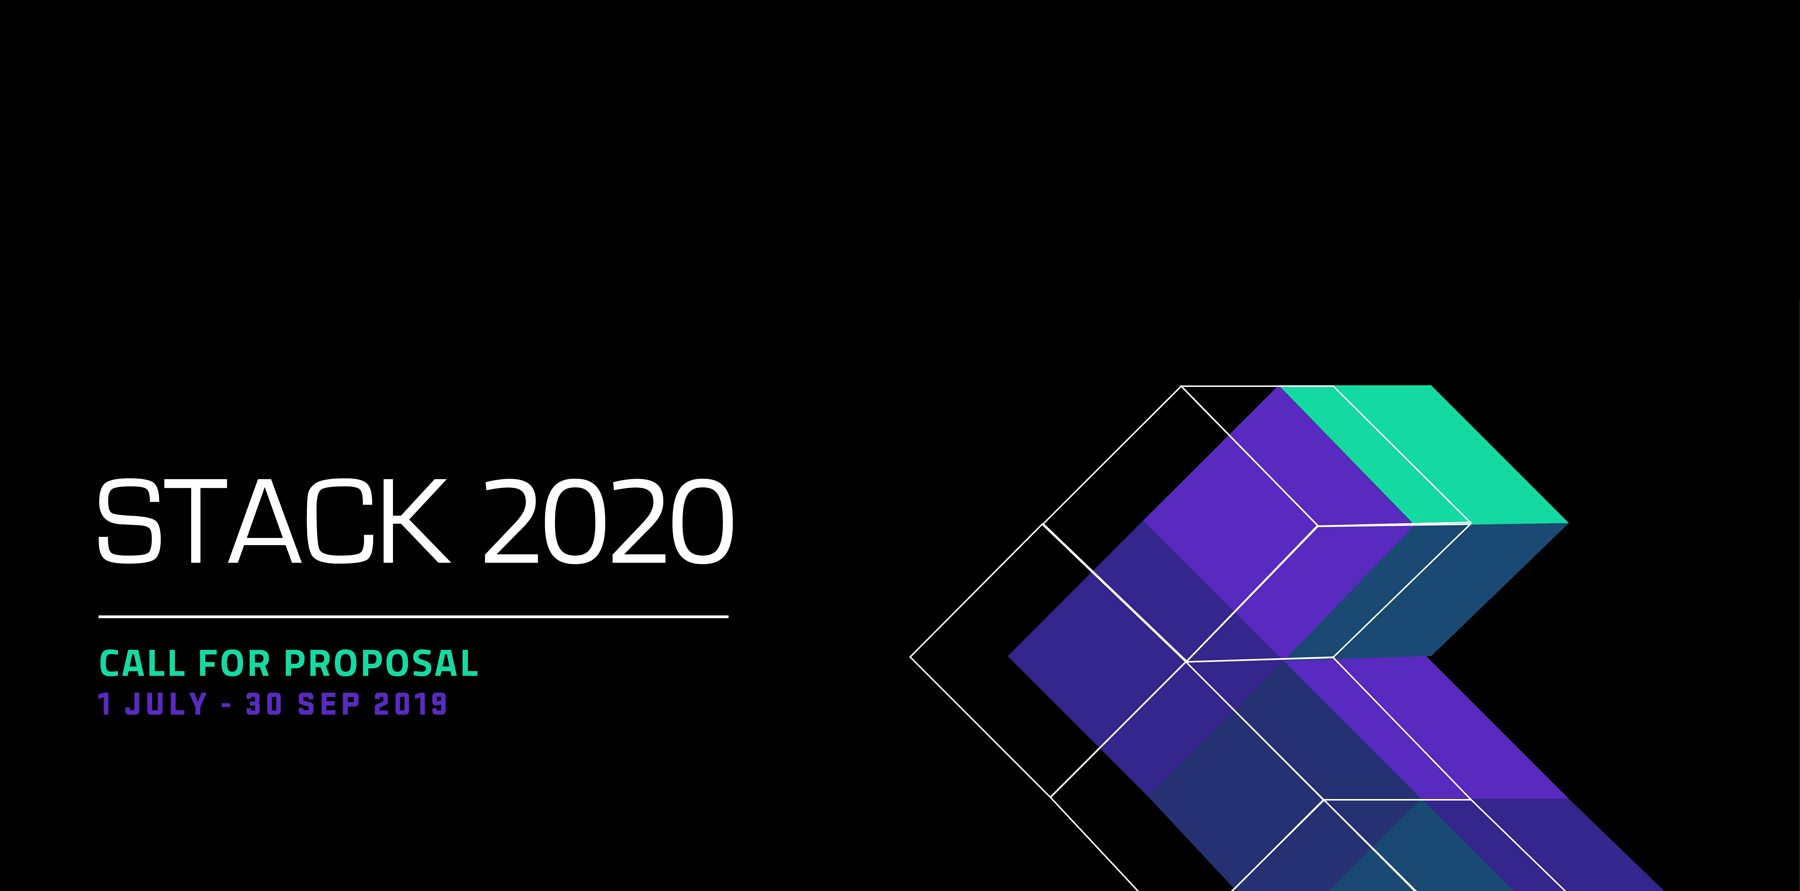 Interested to engage fellow technologists? Participate in our Call for Proposal for STACK 2020.